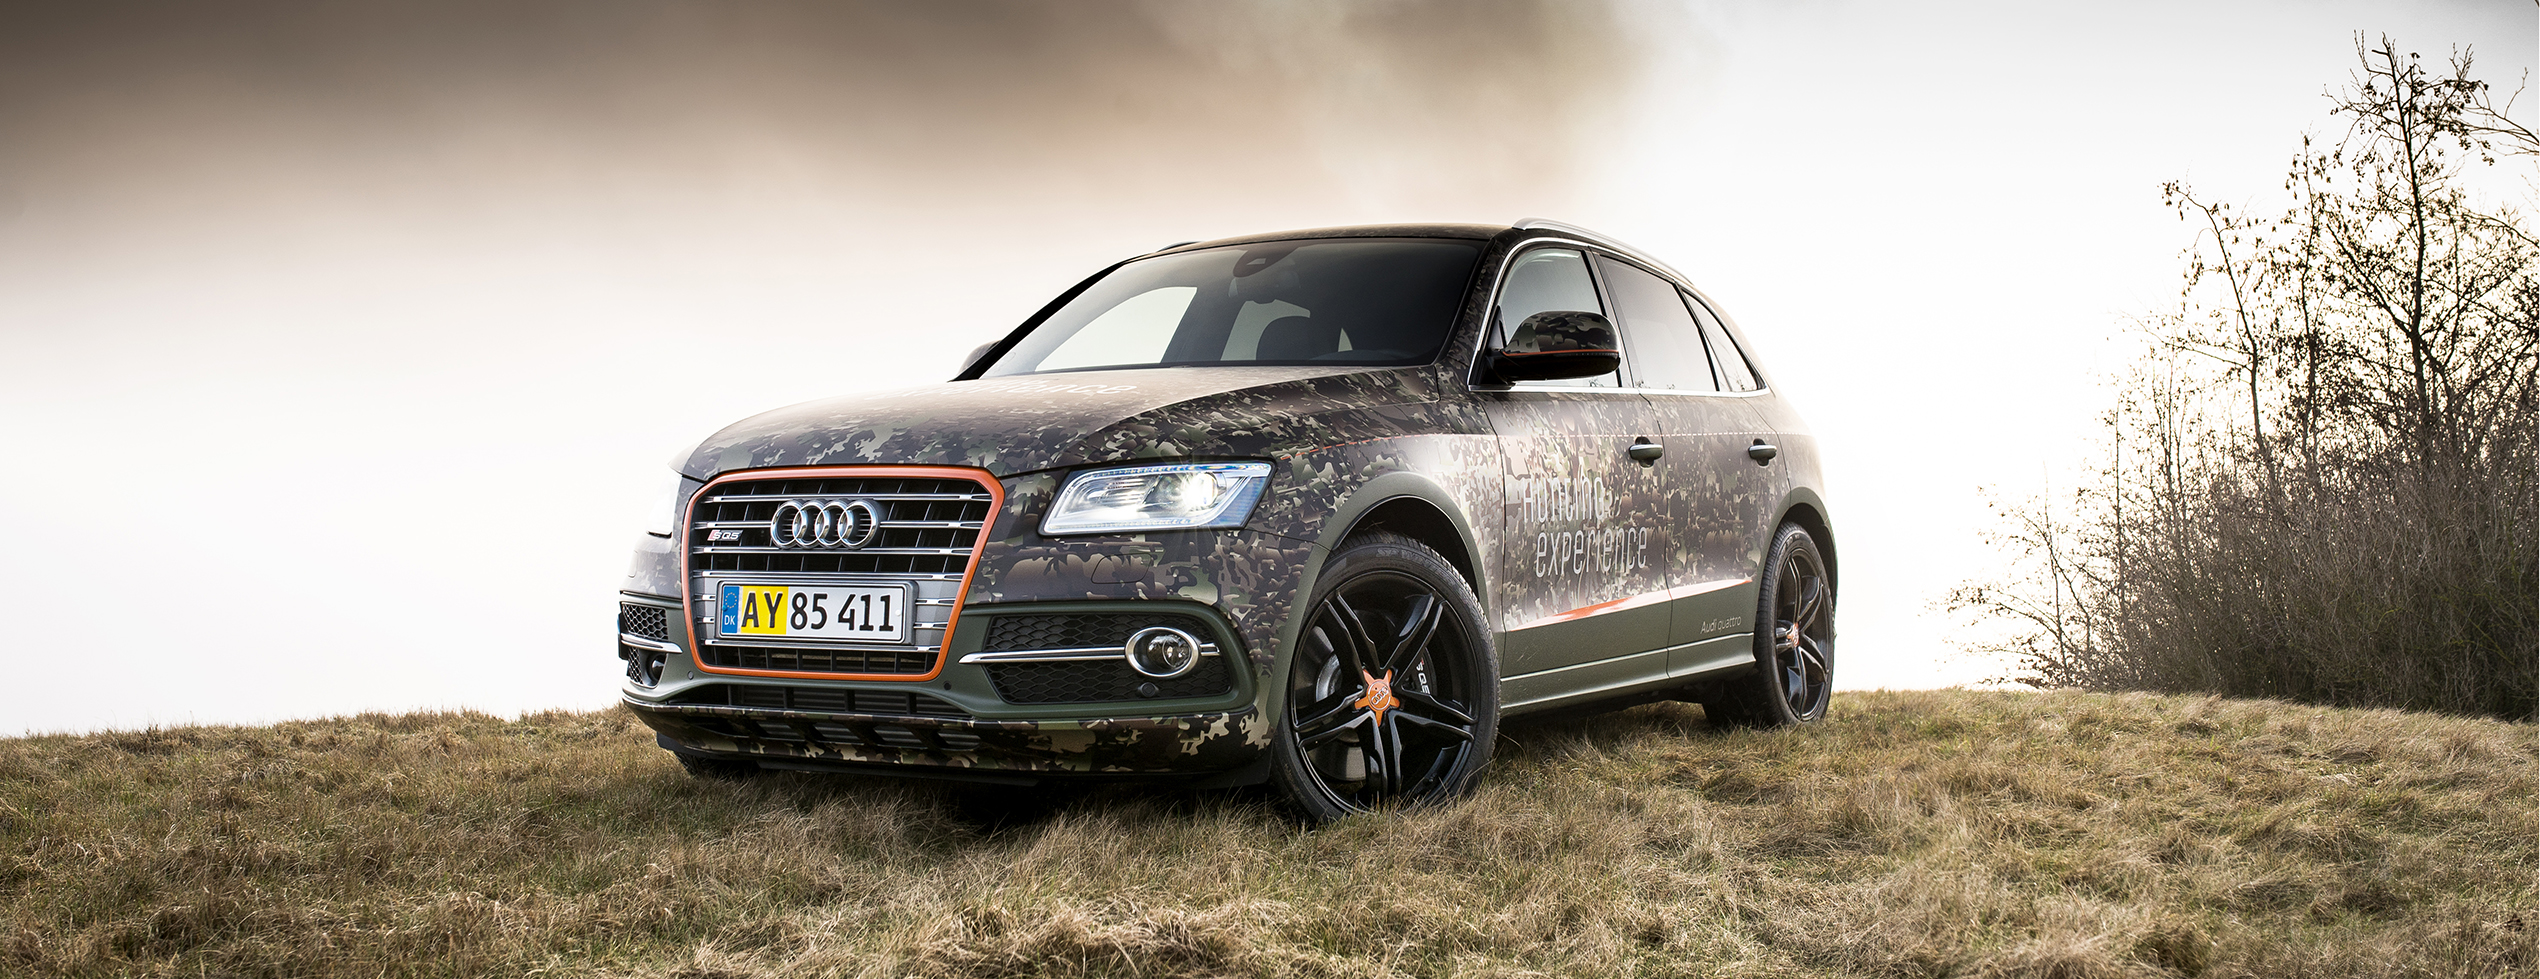 AUDI-HUNTER-Sq5